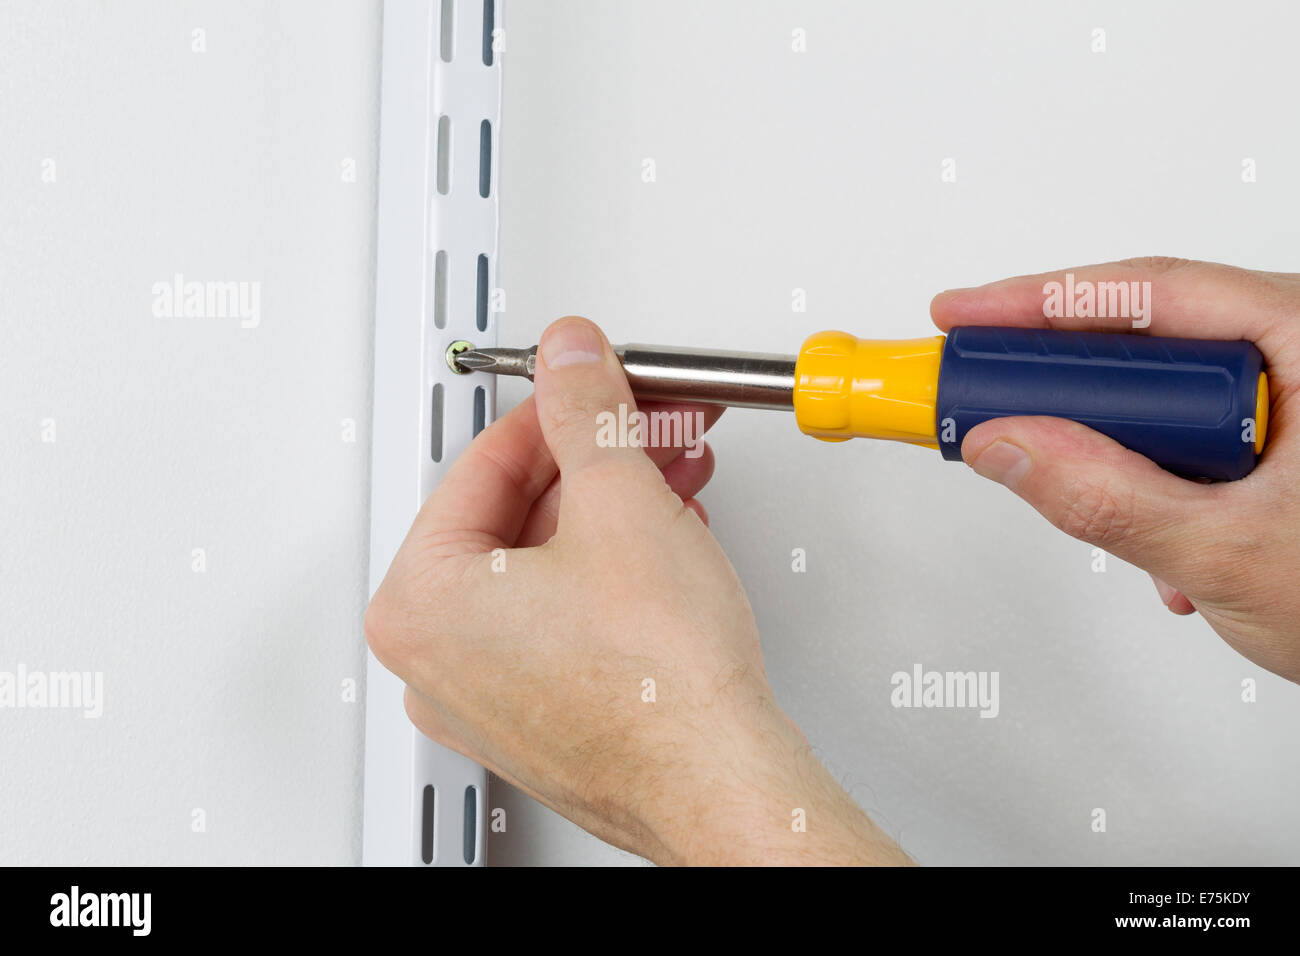 Male hands screwing wood screw into support bracket on wall with manual hand tool screwdriver - Stock Image